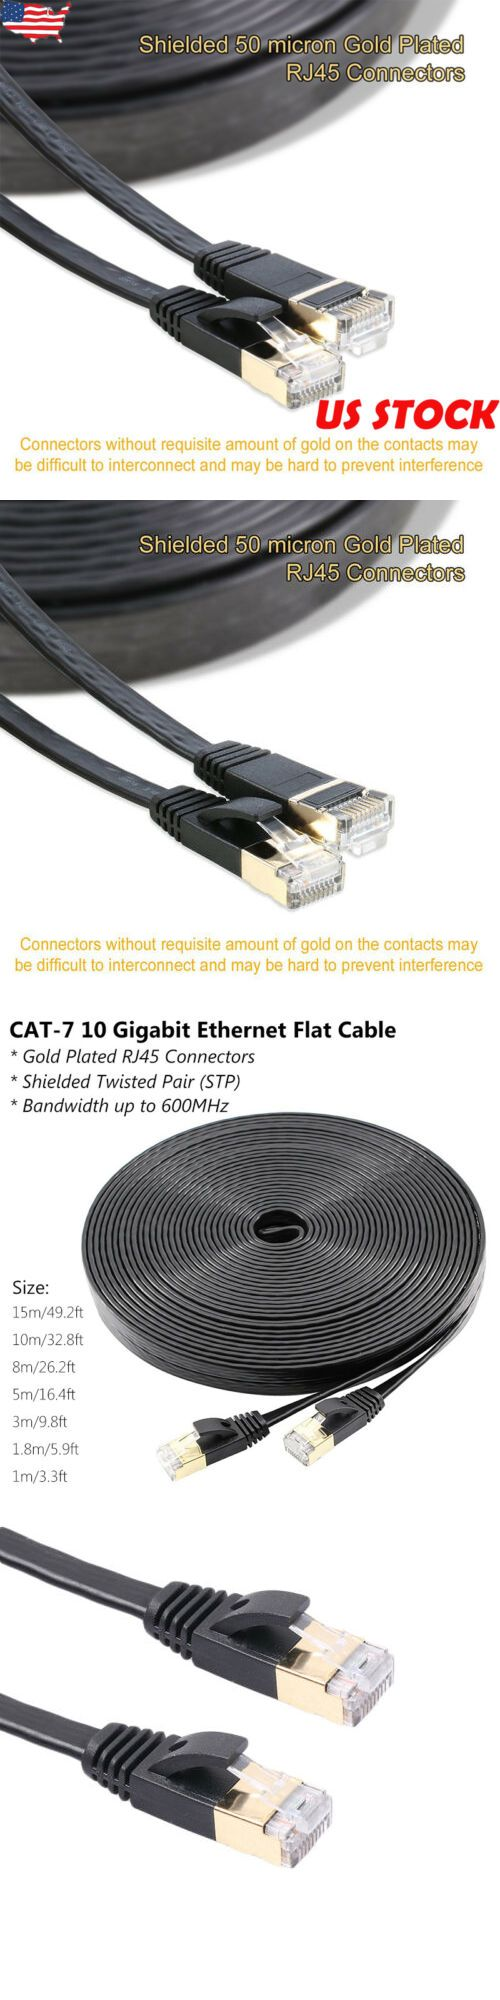 Ethernet Cables Rj 45 8p8c 64035 Usa Cat 7 10 Gigabit Ethernet Ultra Flat Patch Cable Up To 50ft For Modem Router Buy It Modem Router Modems Ethernet Cable